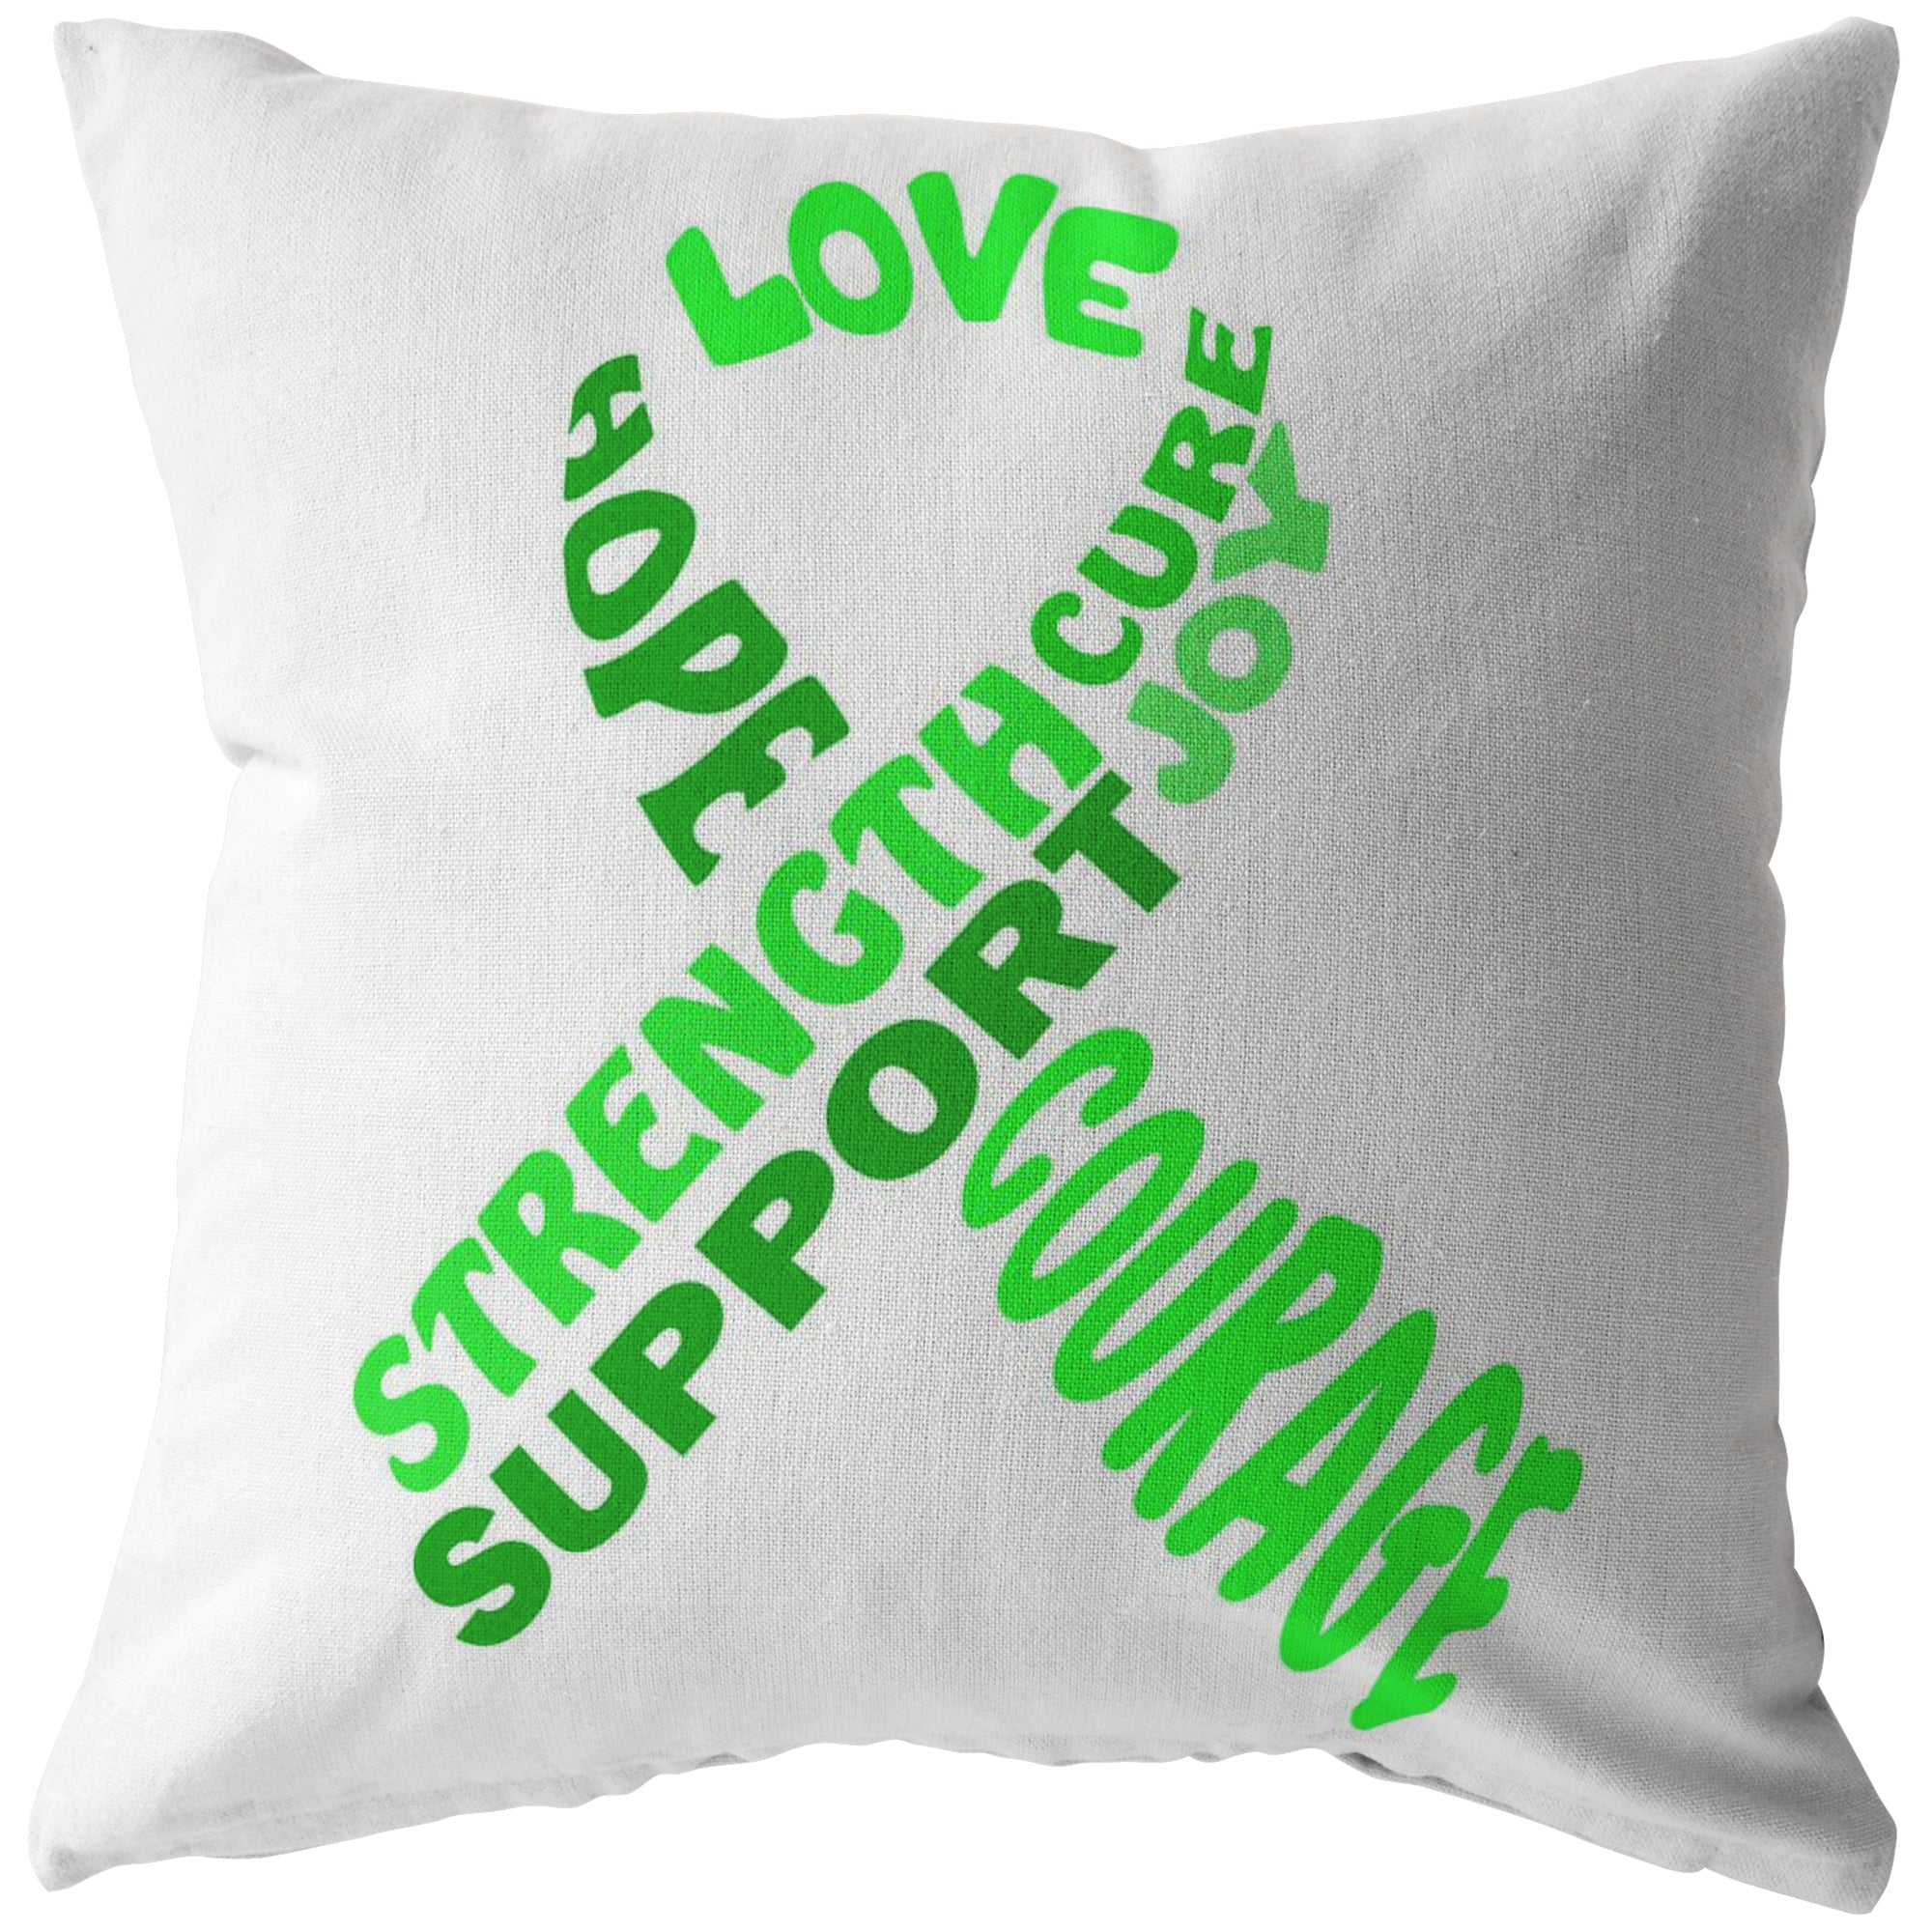 Green Awareness Ribbon With Words Pillow